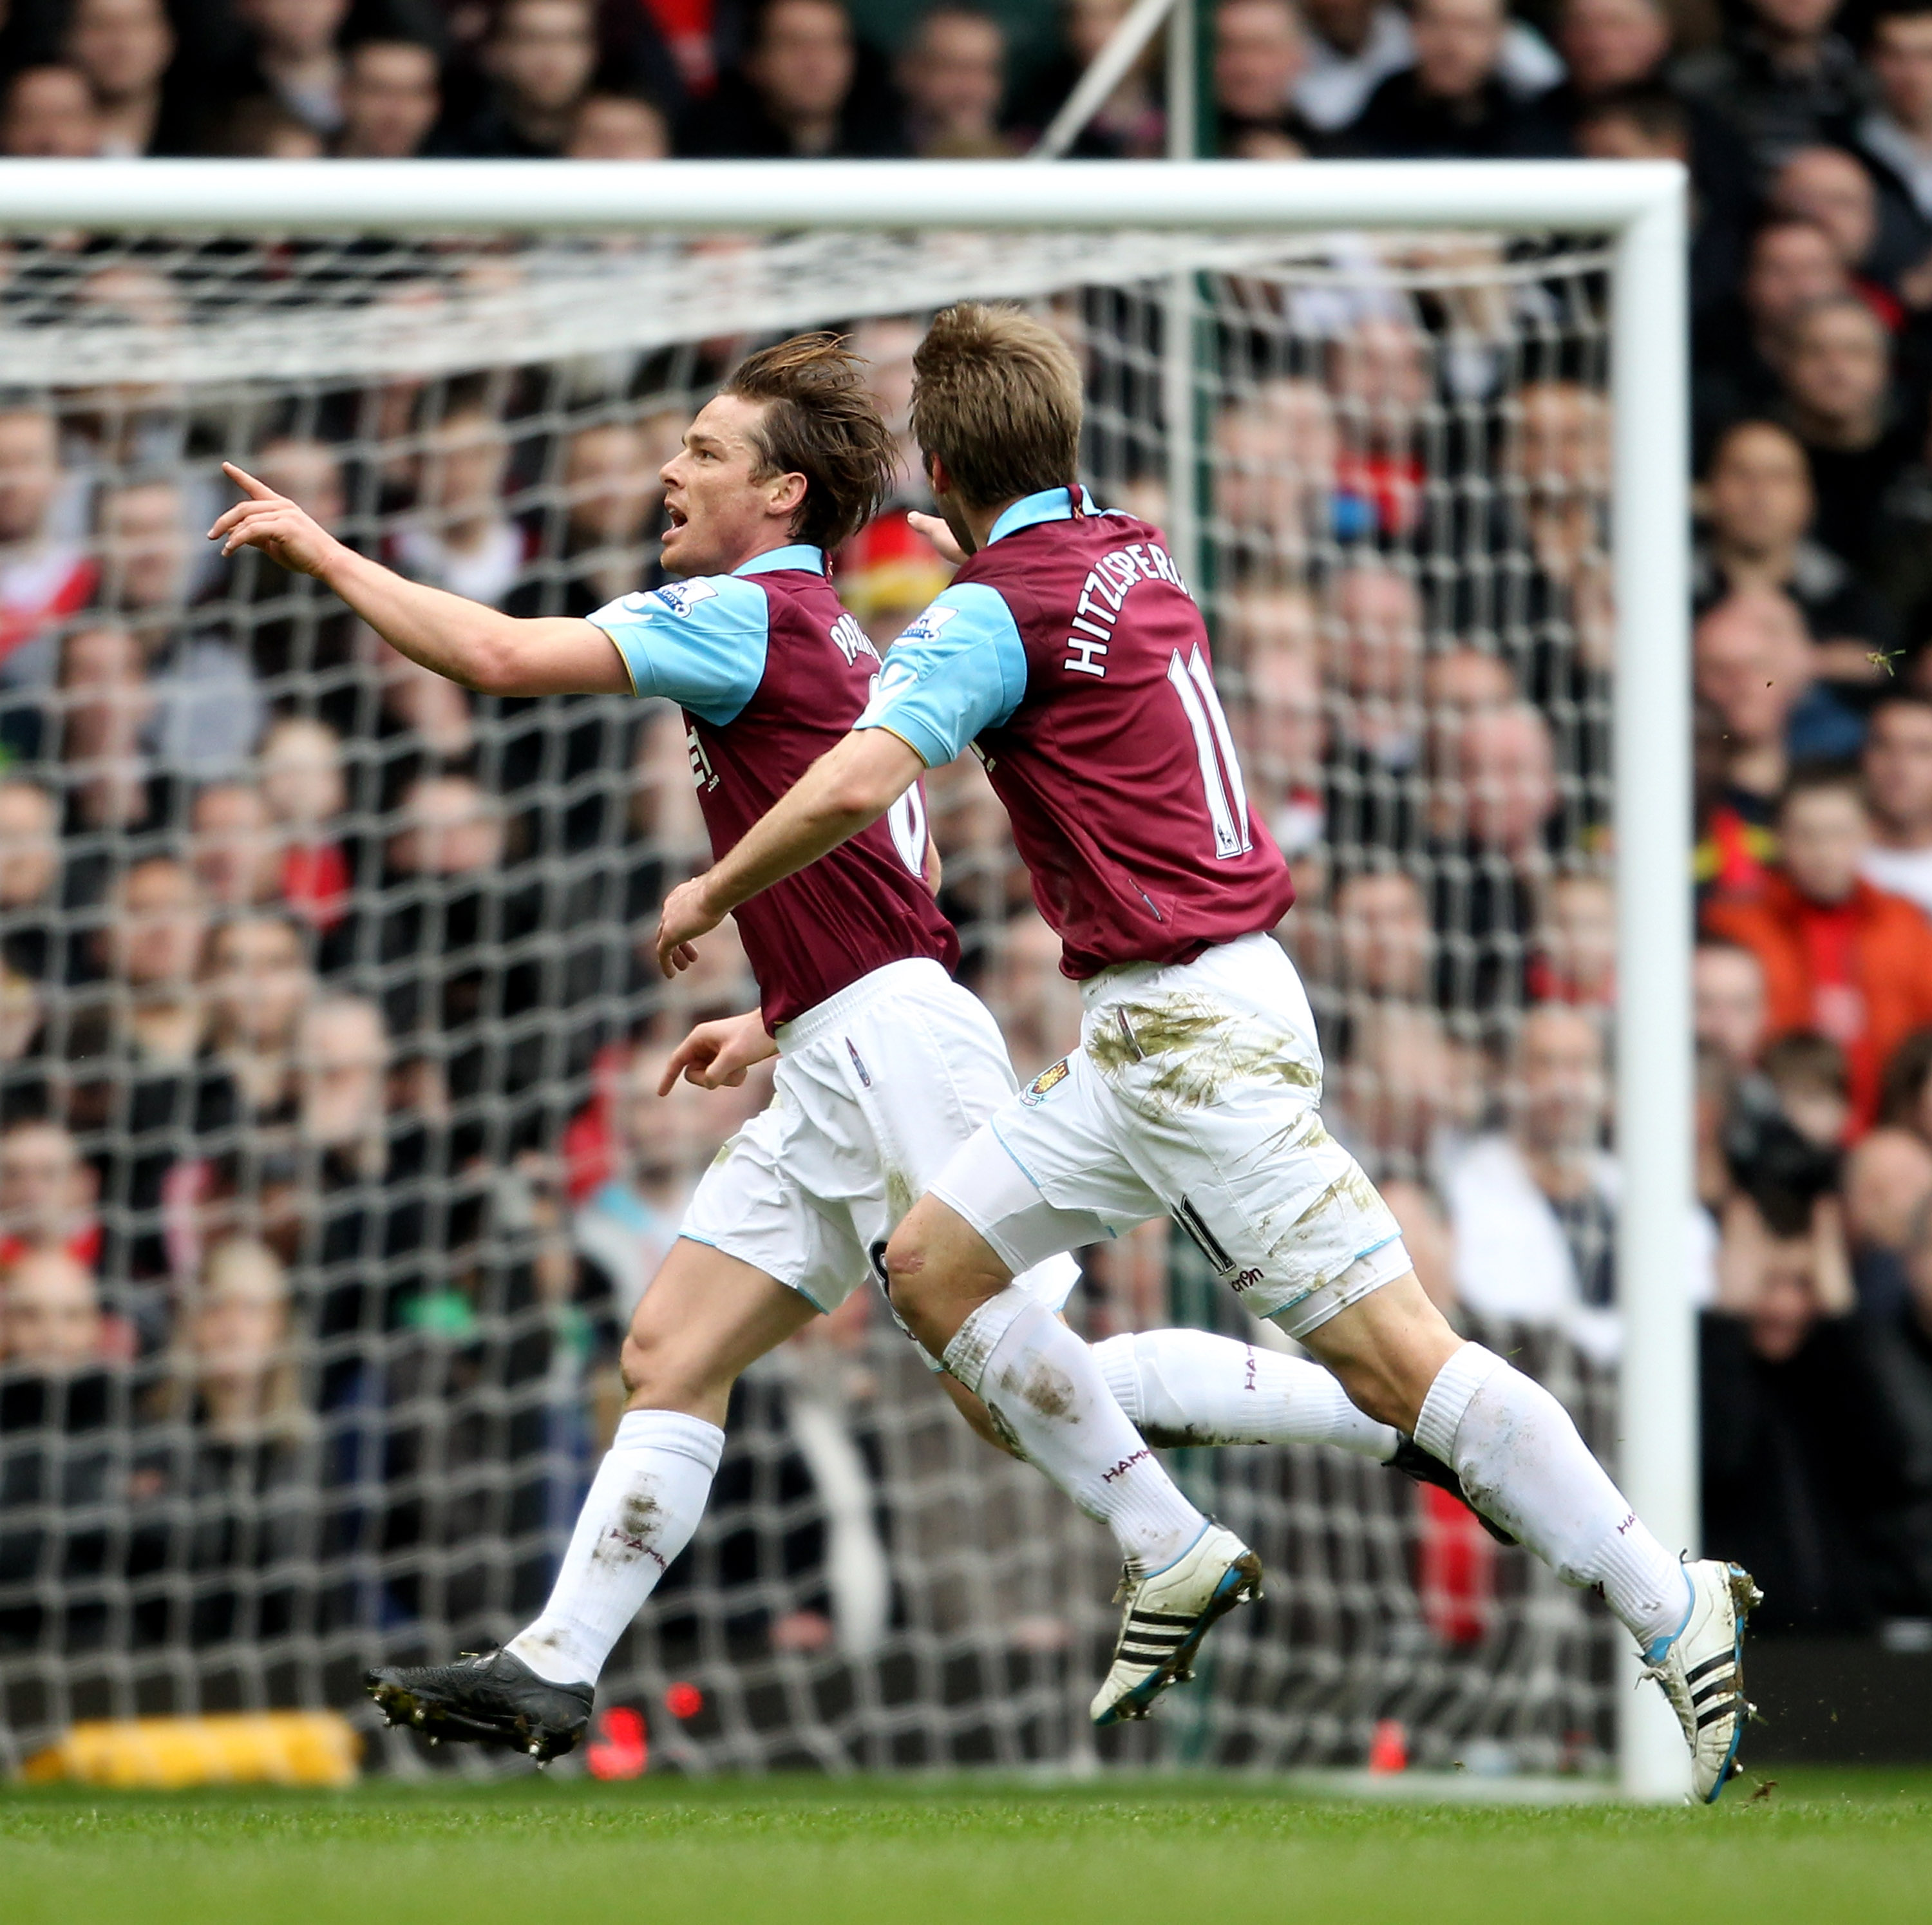 LONDON, ENGLAND - FEBRUARY 27:  Scott Parker (L) of West Ham celebrates with teammate Thomas Hitzlsperger as he scores the opening goal during the Barclays Premier League match between West Ham United and Liverpool at the Boleyn Ground on February 27, 201